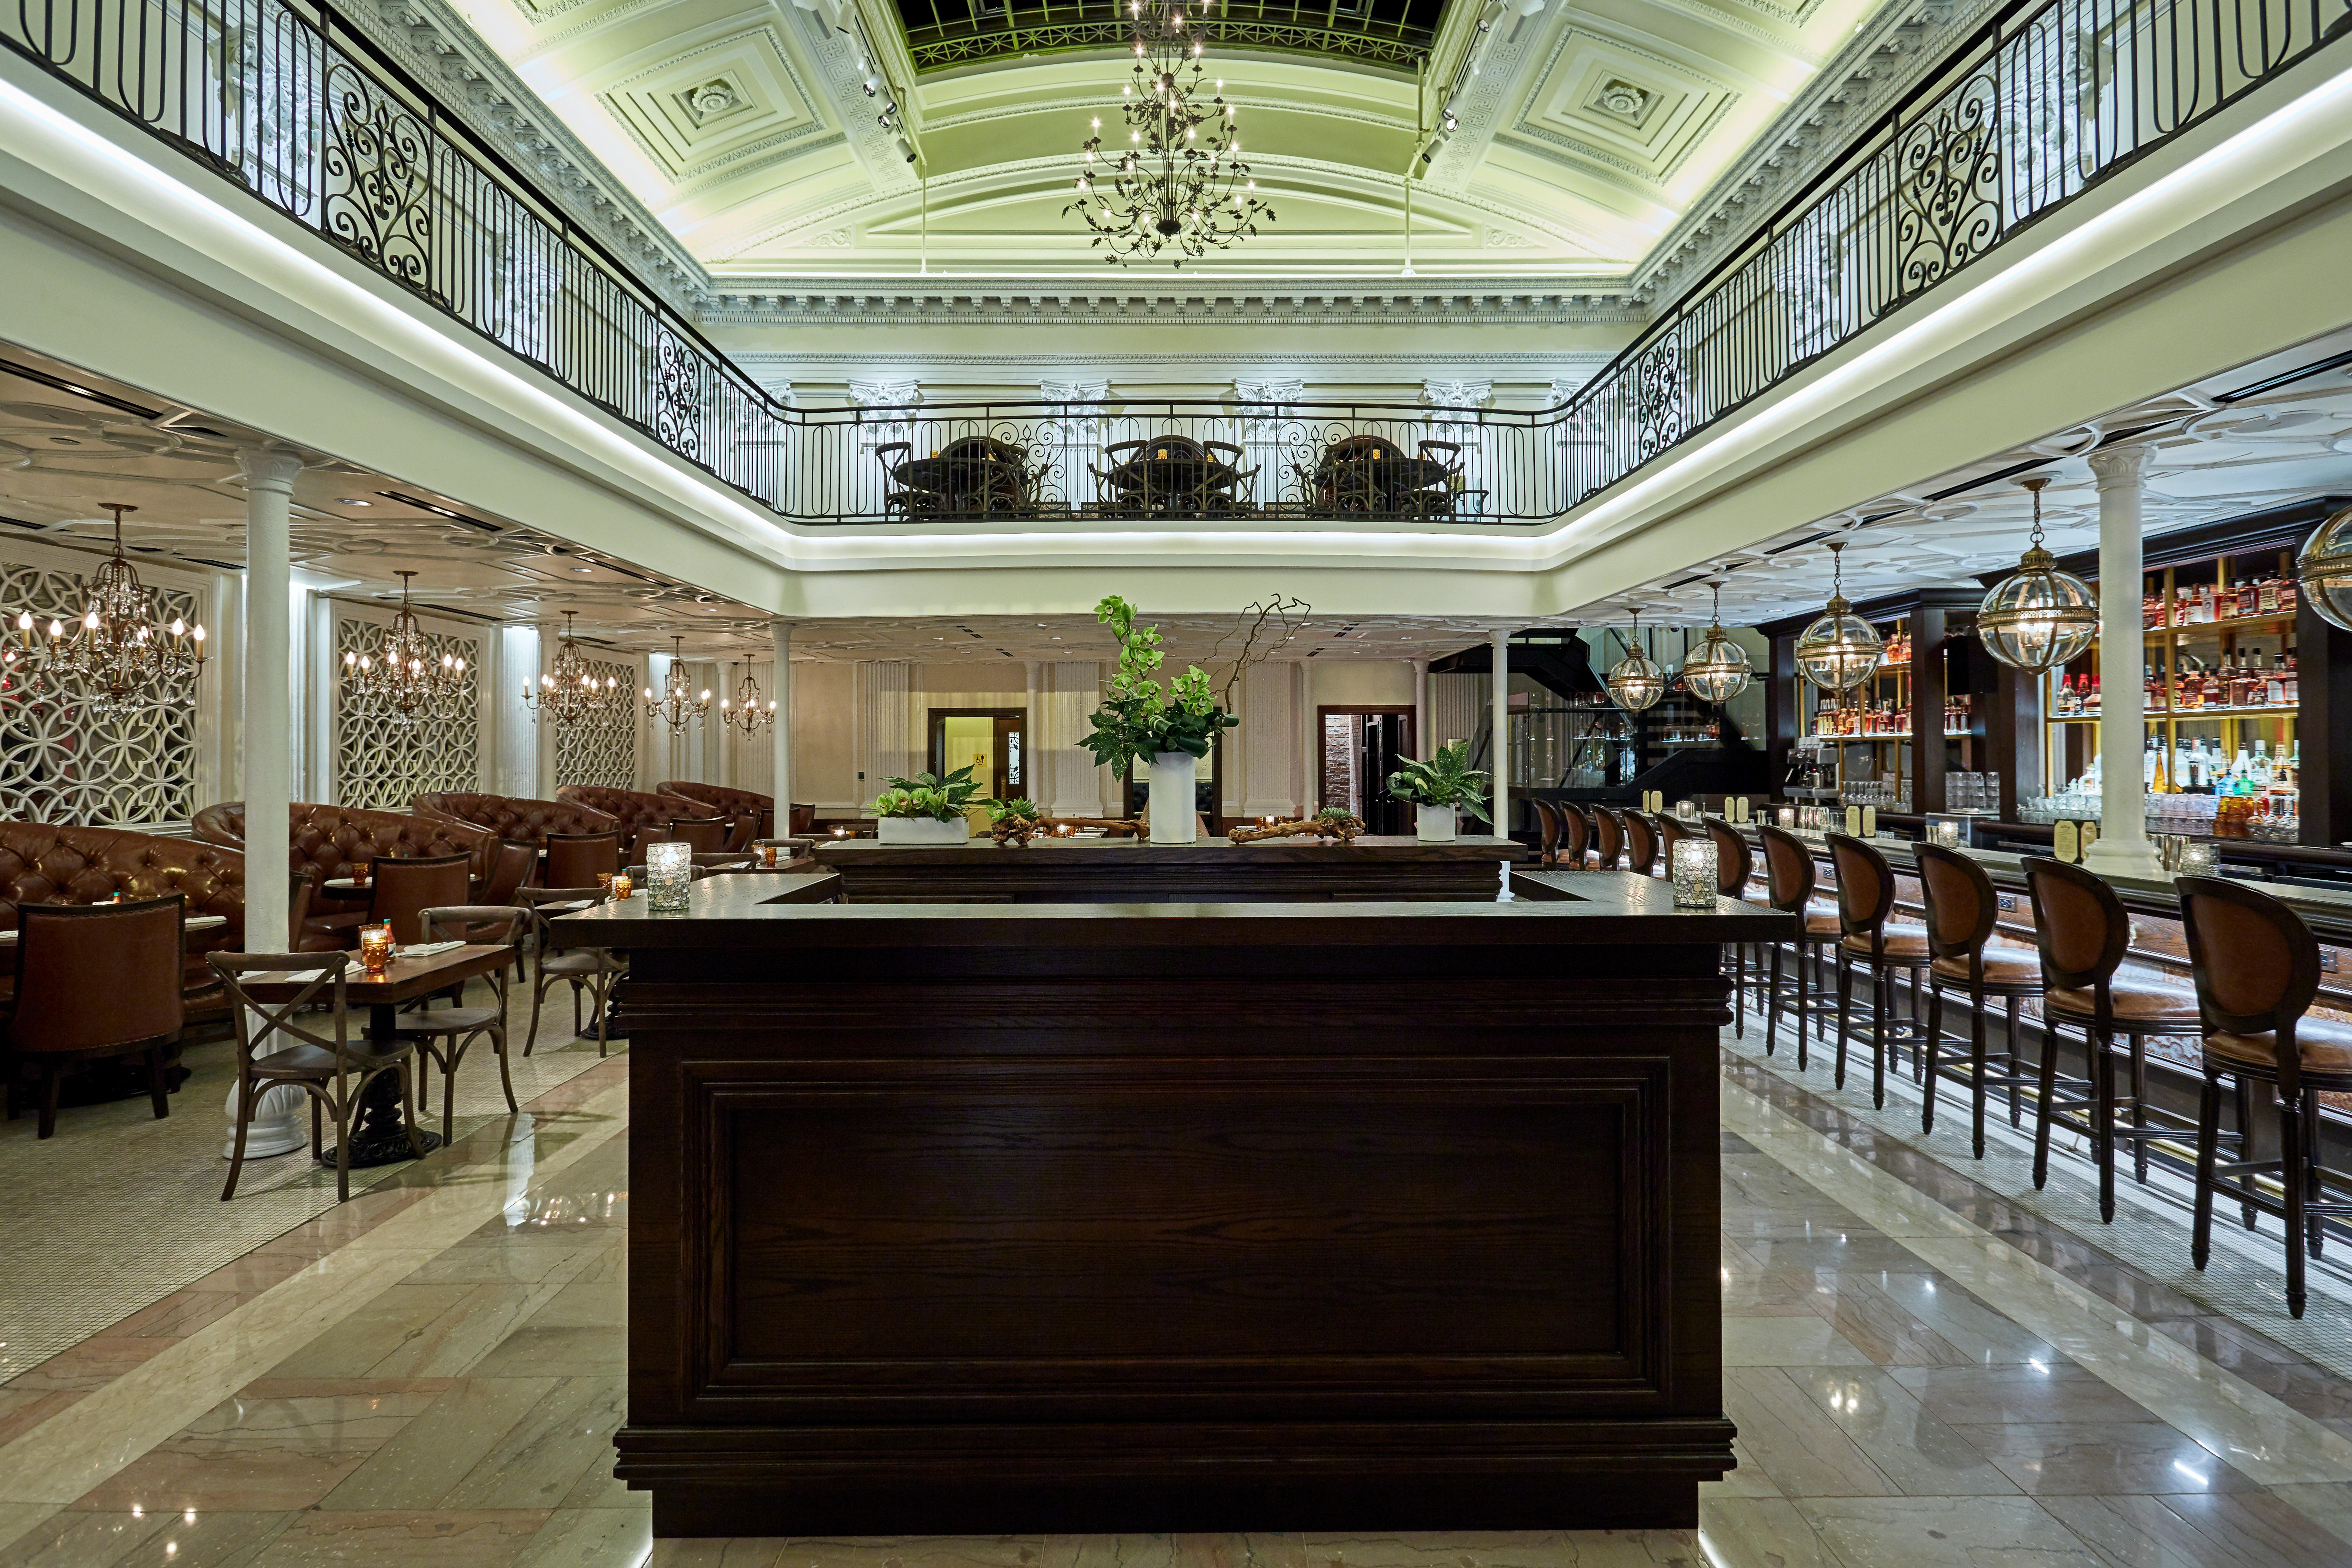 Edward Lee's take on Southern cooking debuted in Penn Quarter in late 2017 inside the beautifully adorned Equitable Bank building. (Image: Scott Suchman)<p></p>